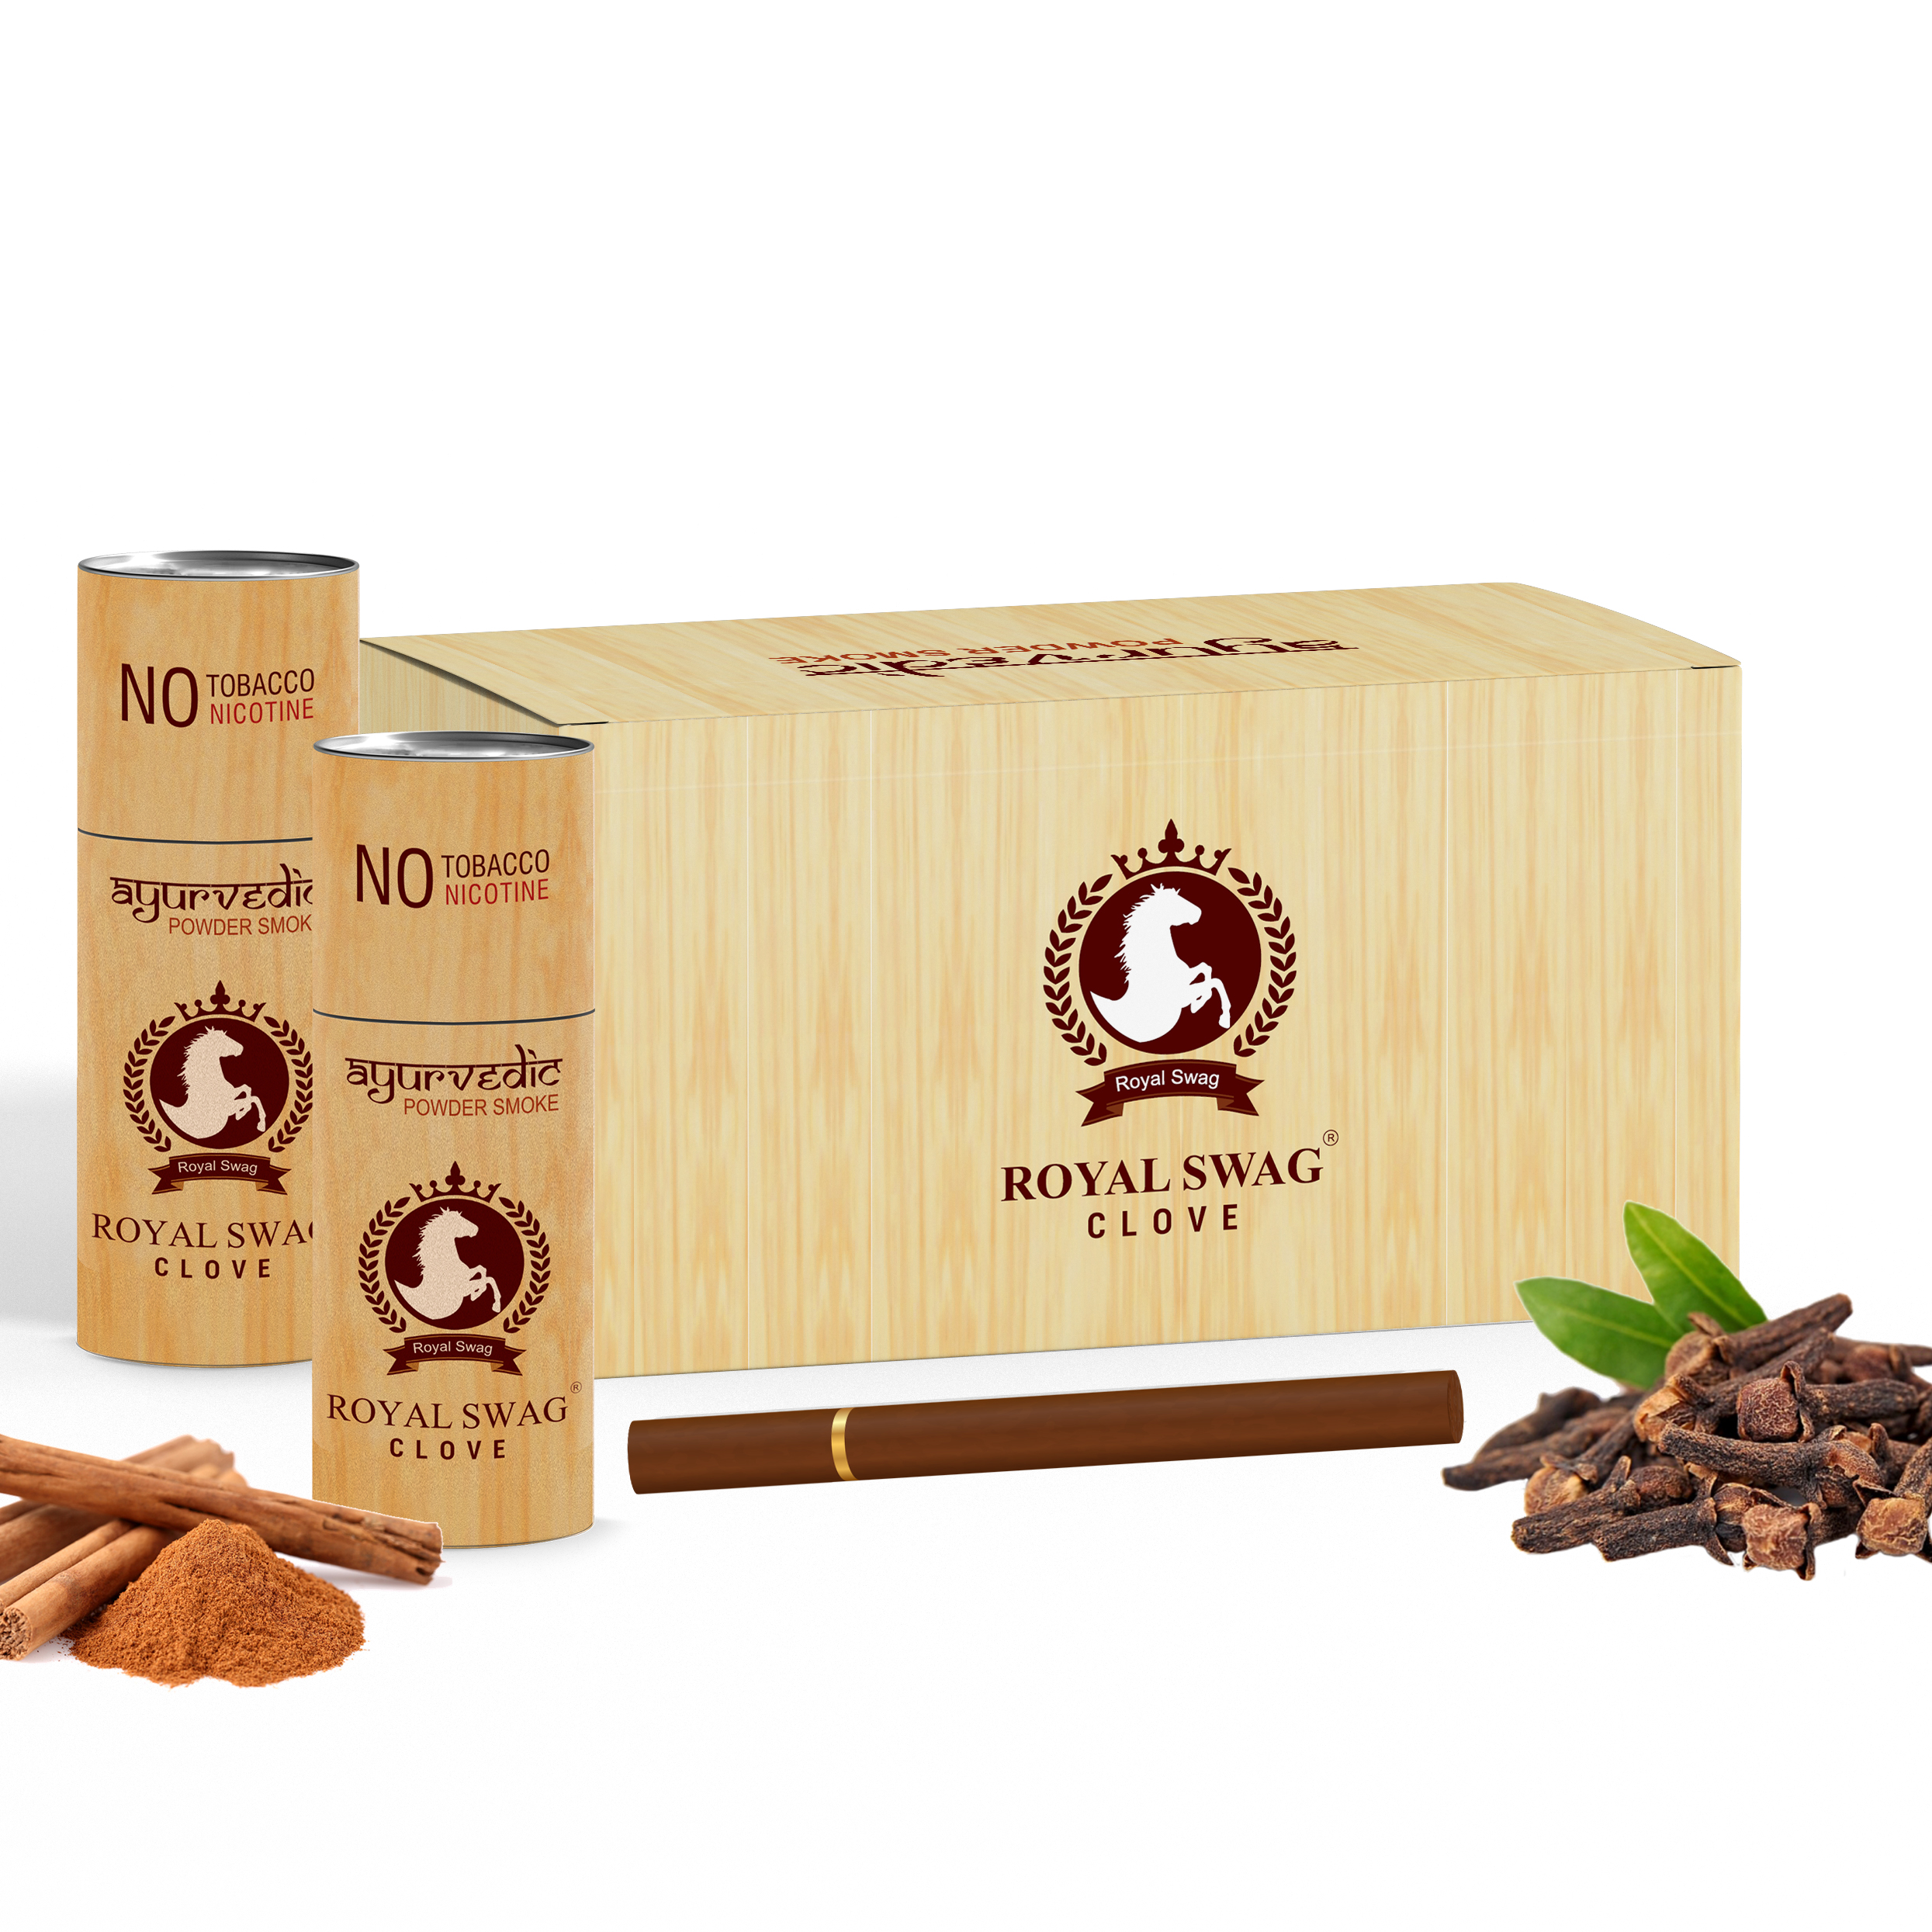 Royal Swag Herbal Cigarette MCT MINT 100% Nicotine & Tobacco Free Cigarettes - Pack Of 10 (50 Sticks)